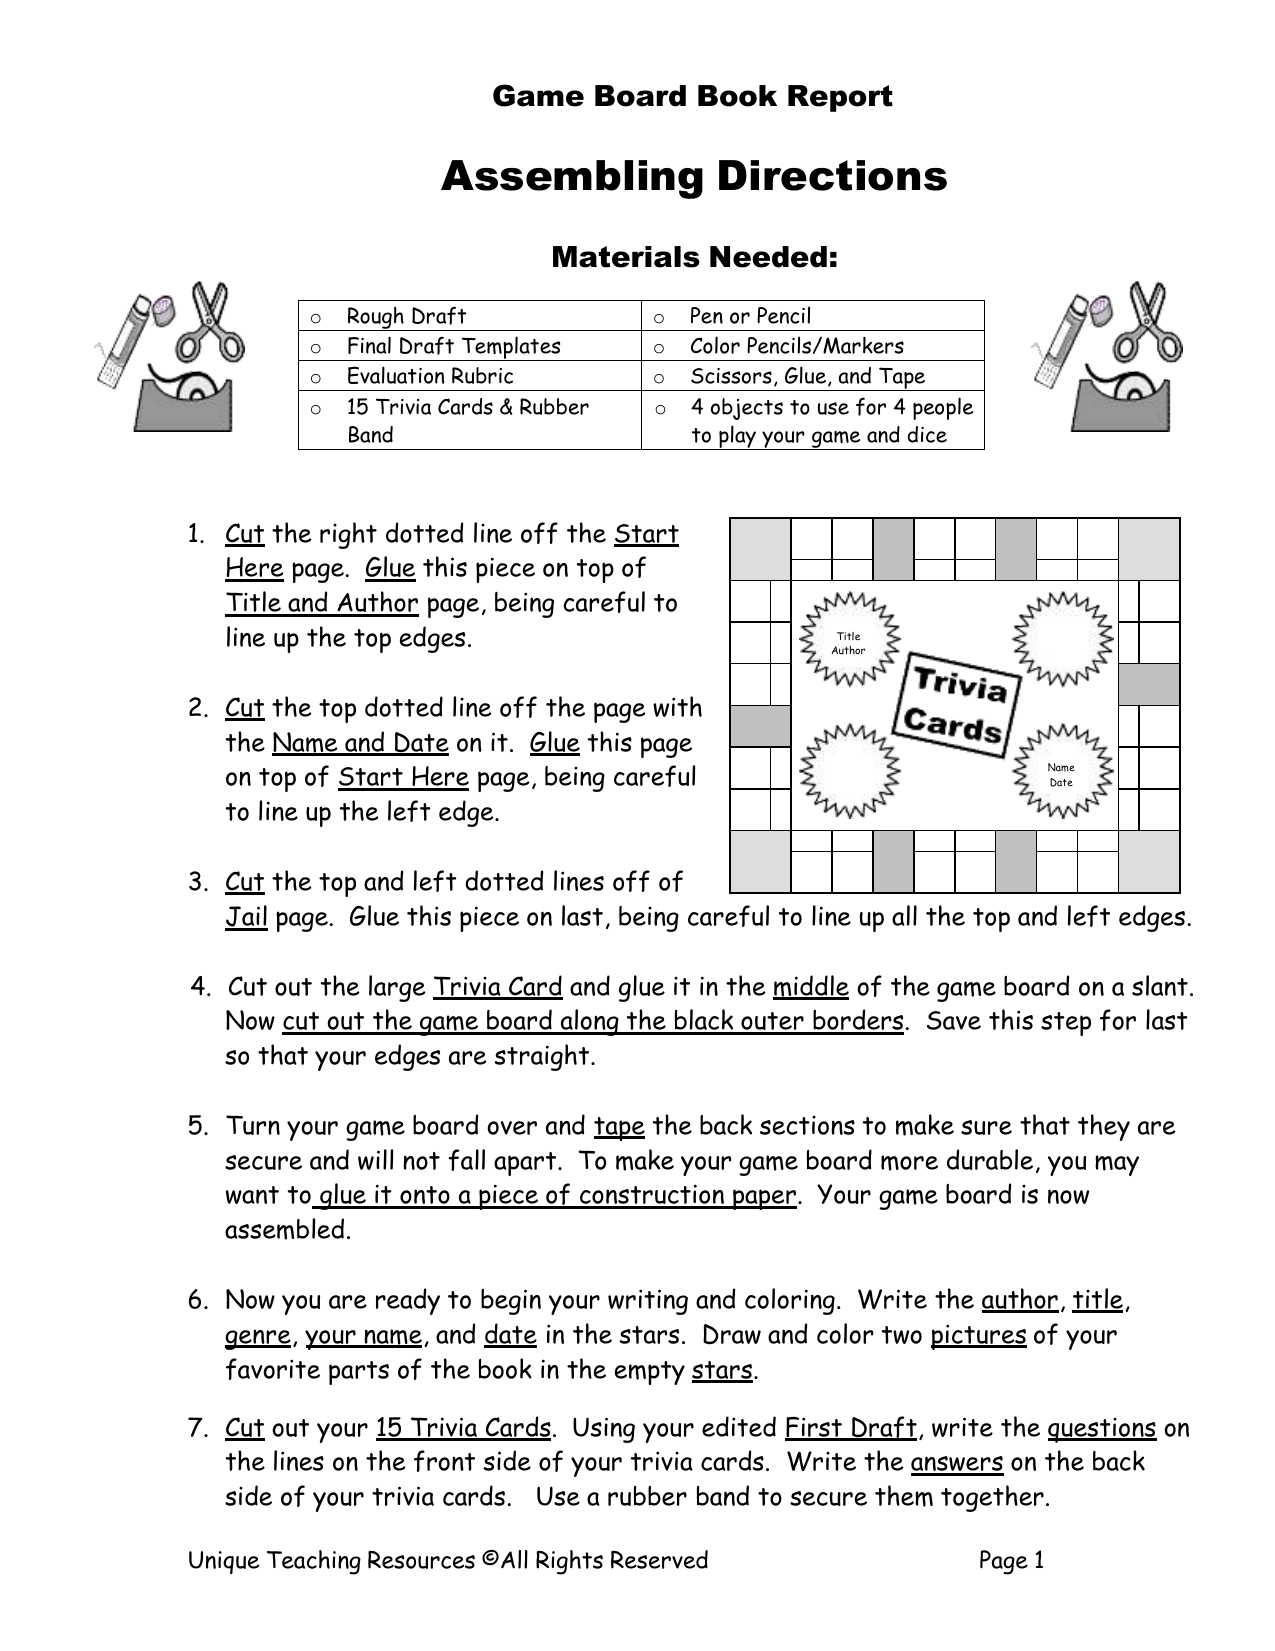 Game Board Book Report Directions